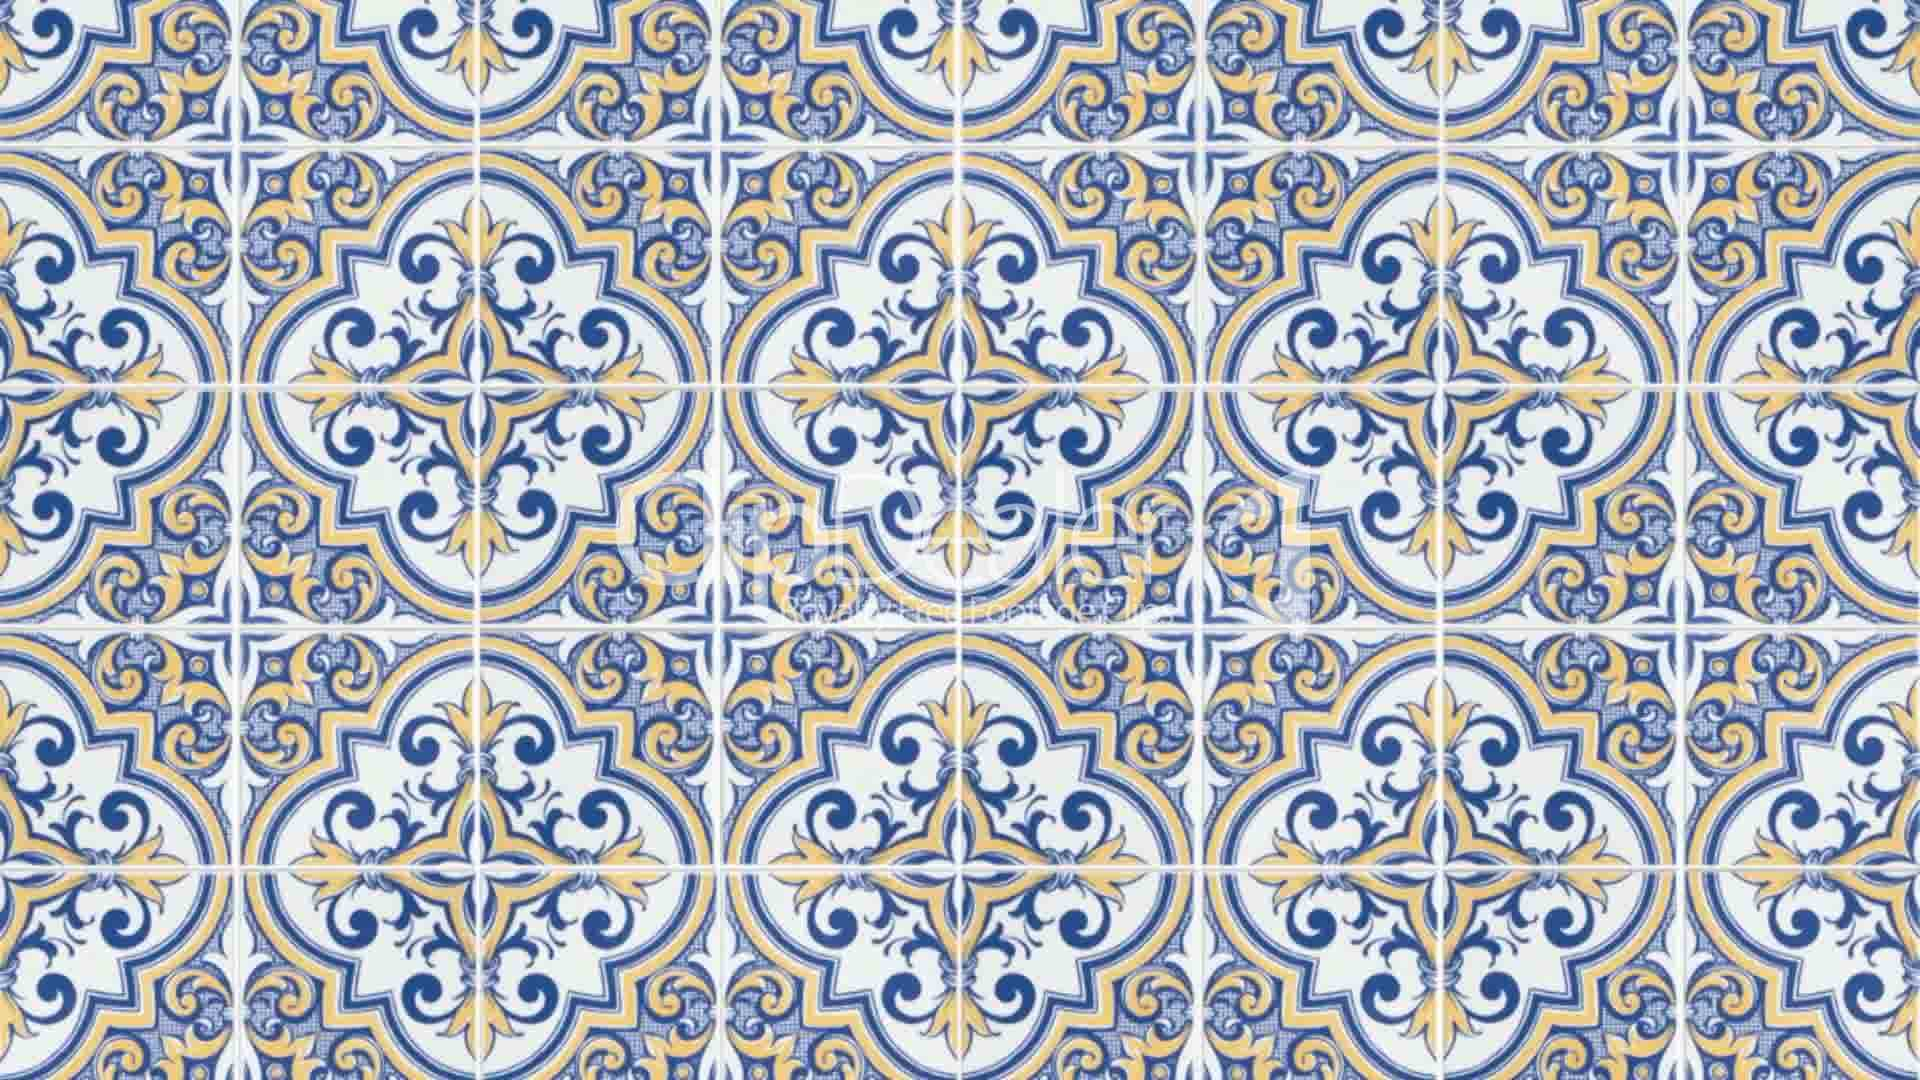 Clips Seamless Tile Pattern Royalty Free